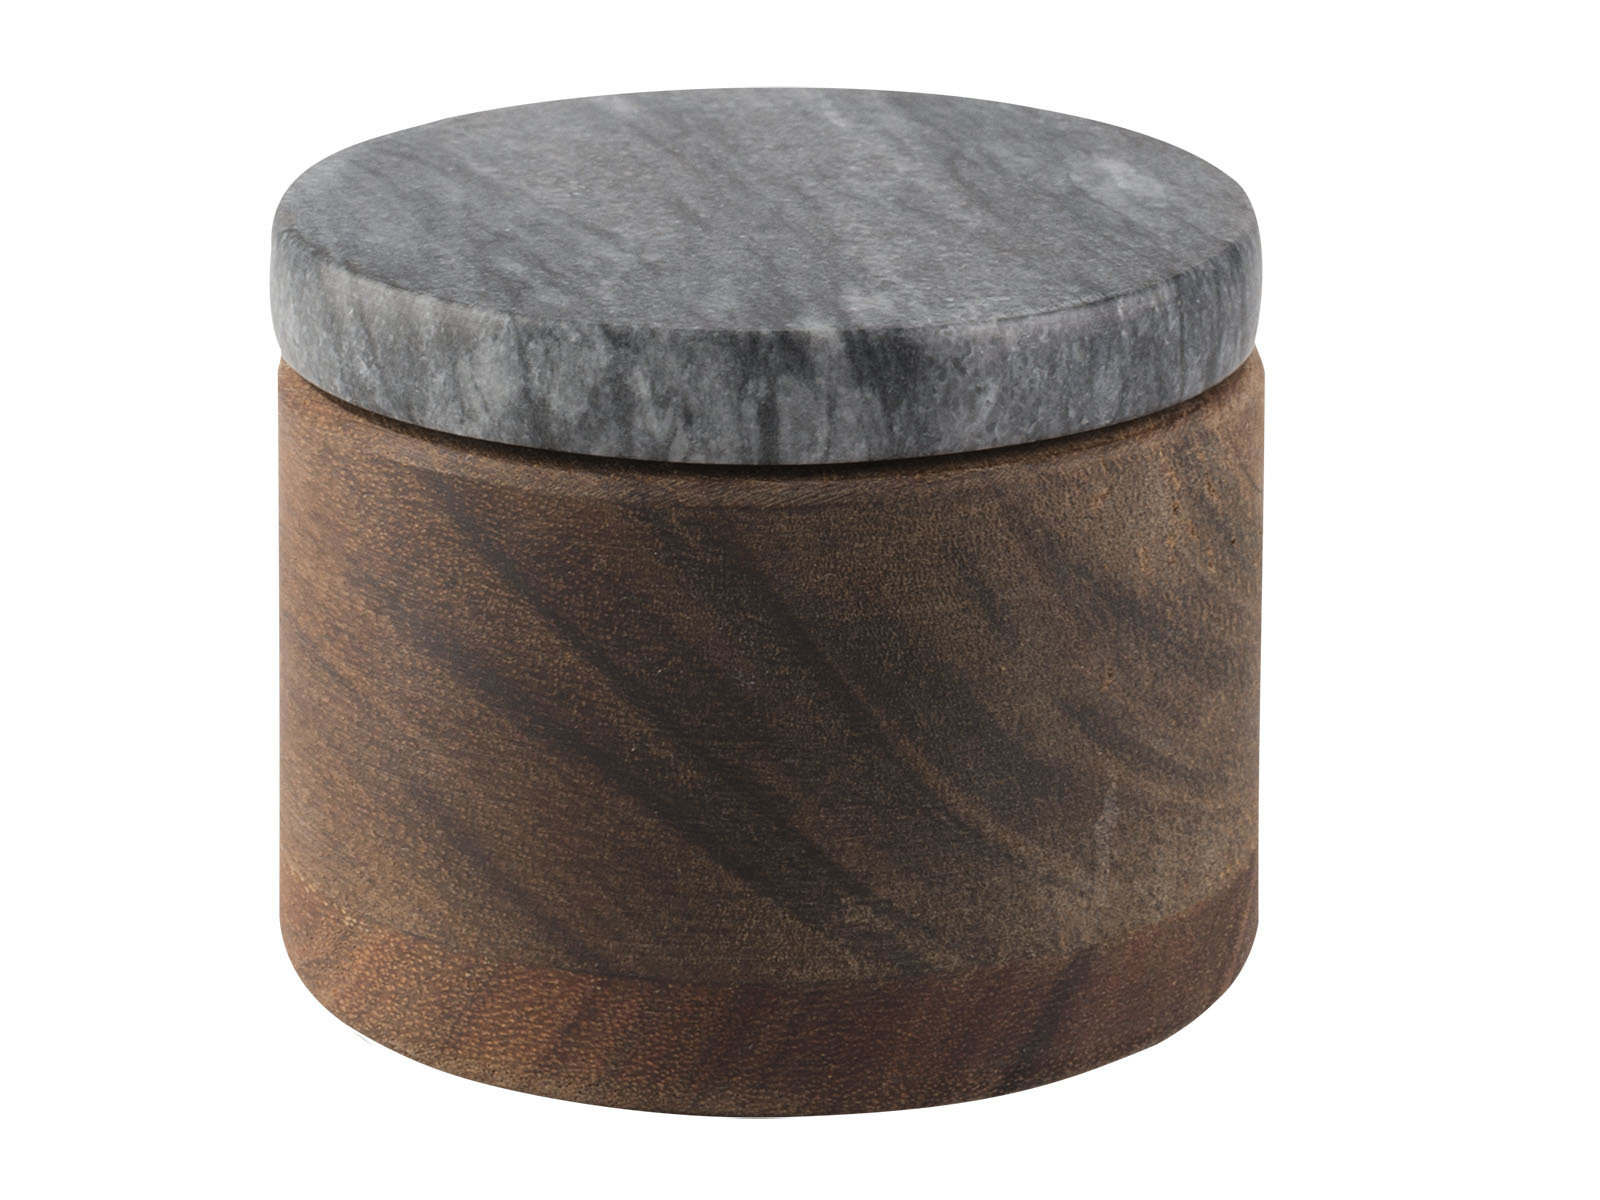 Sabatier Maison Wood Salt Pig With Black Marble Lid